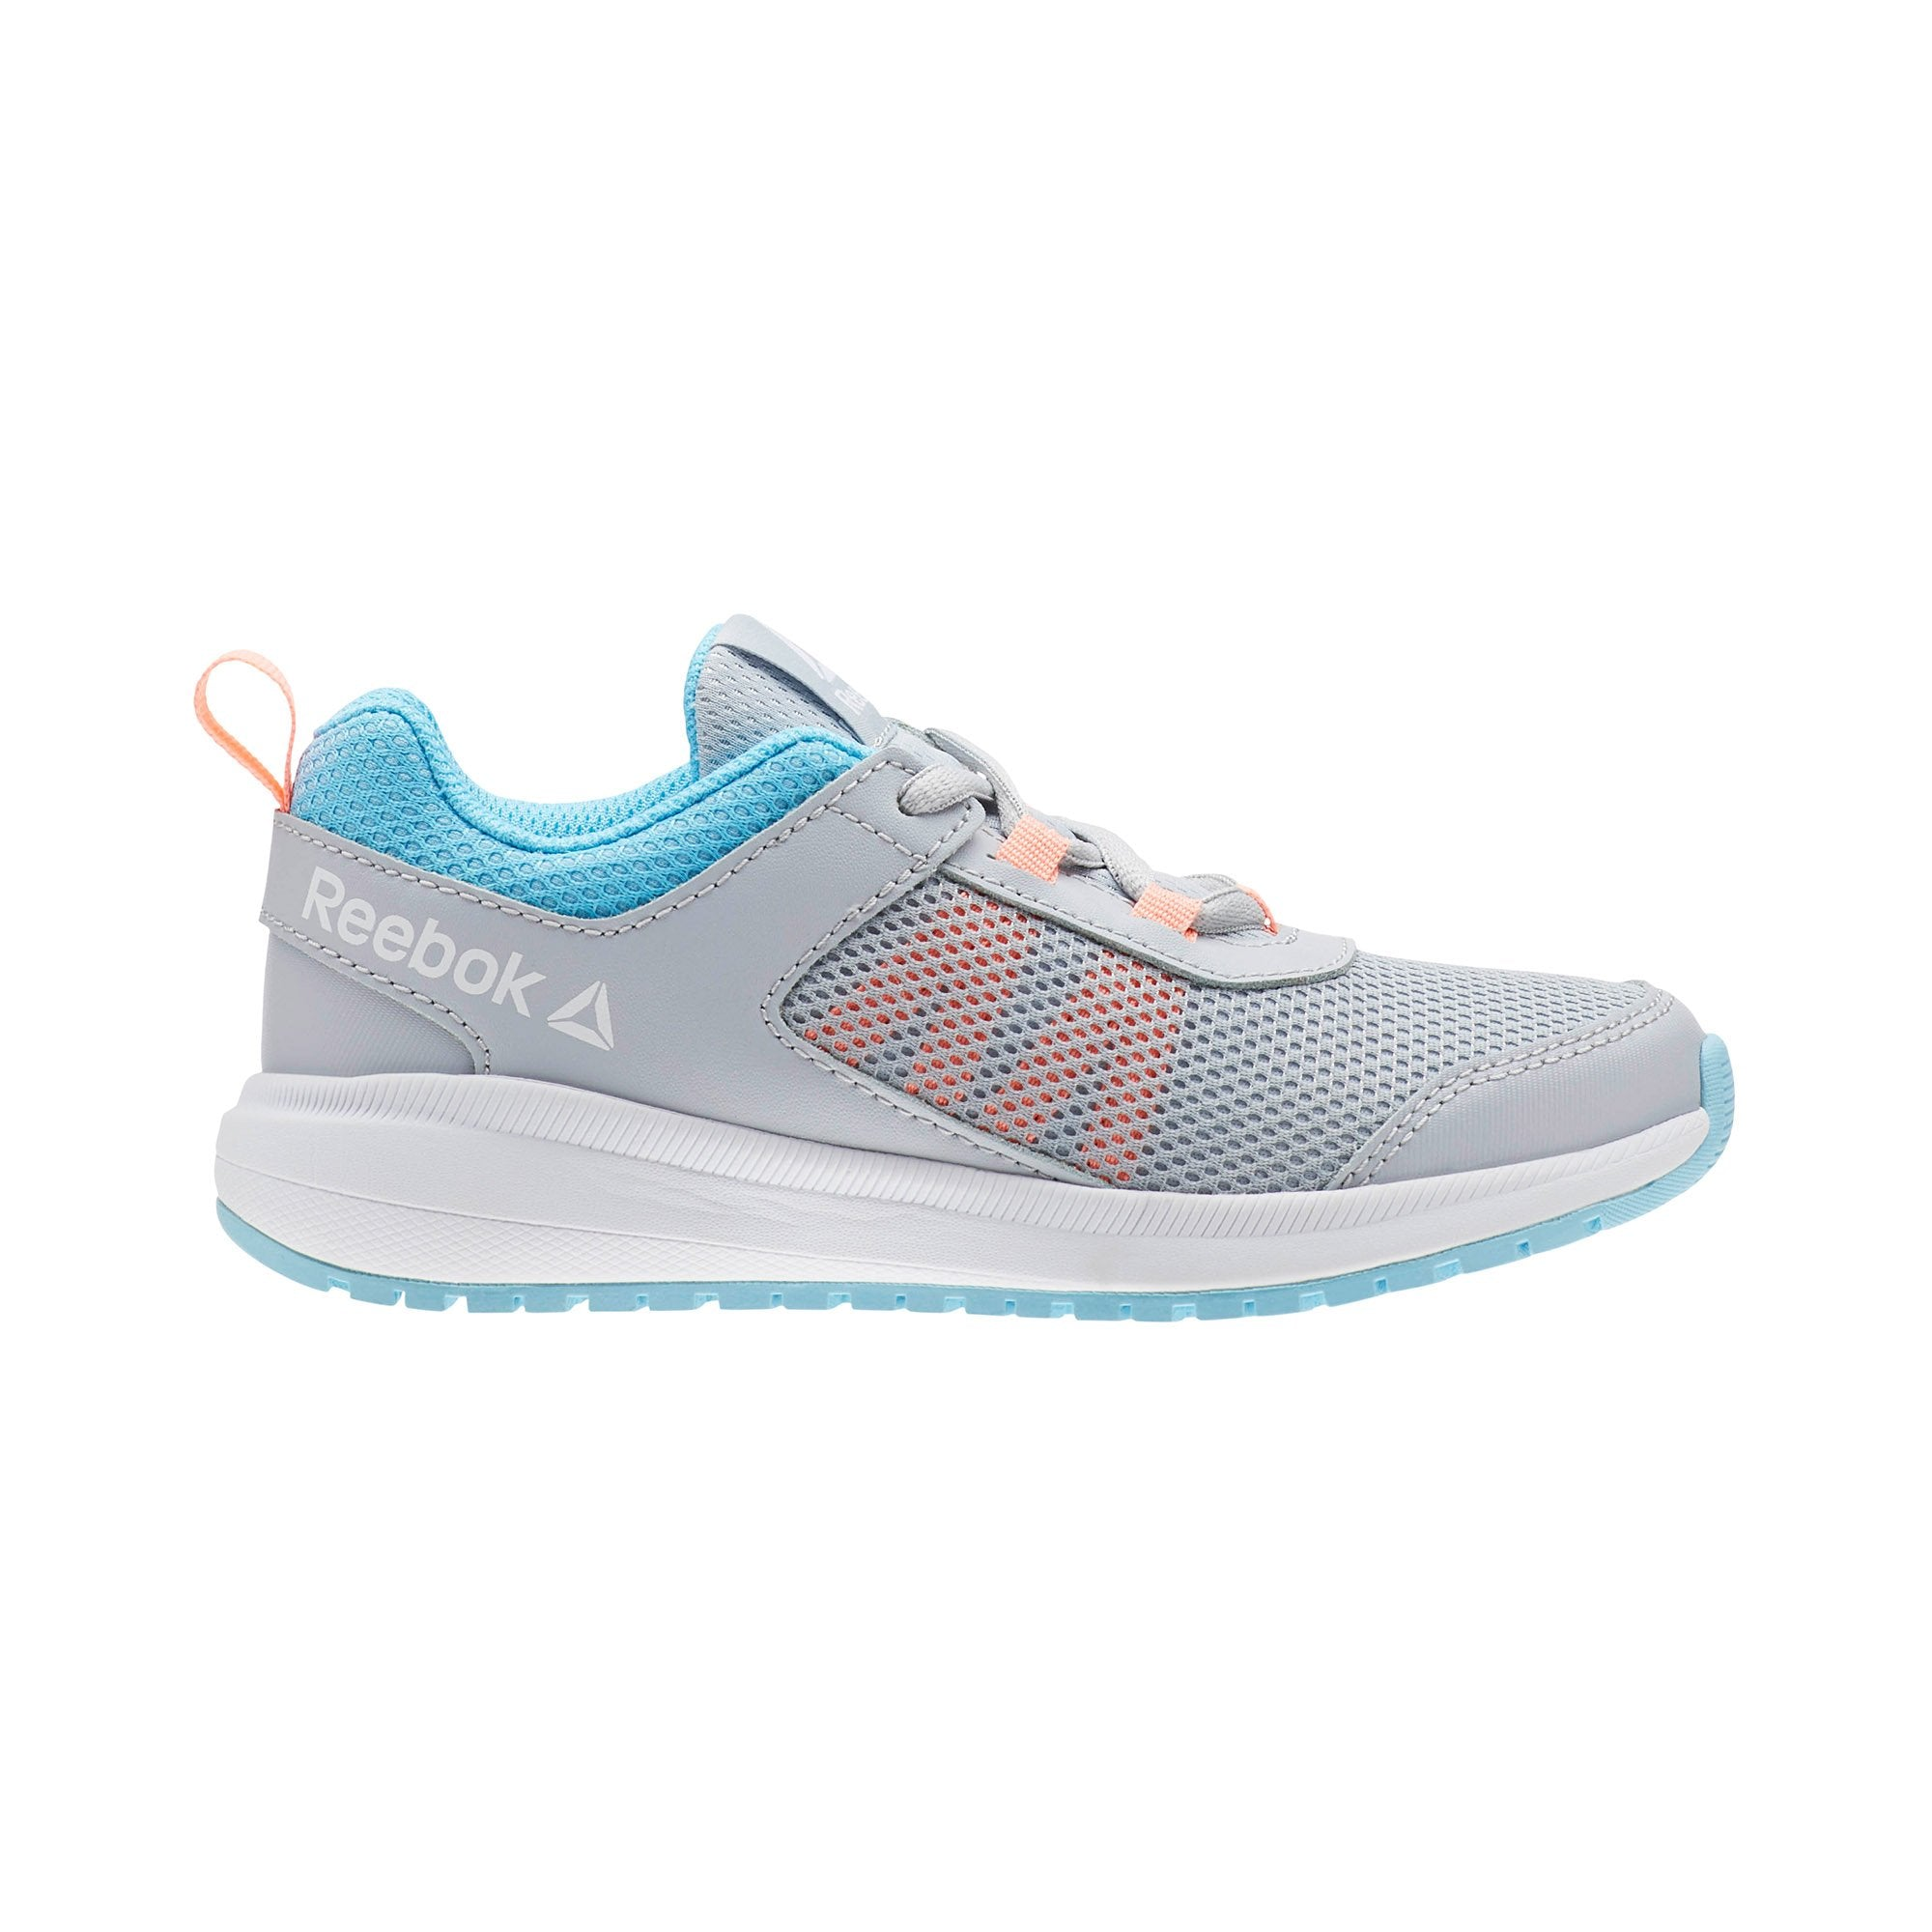 a88a05499f18 Buy Reebok Boys Road Supreme Running Shoes